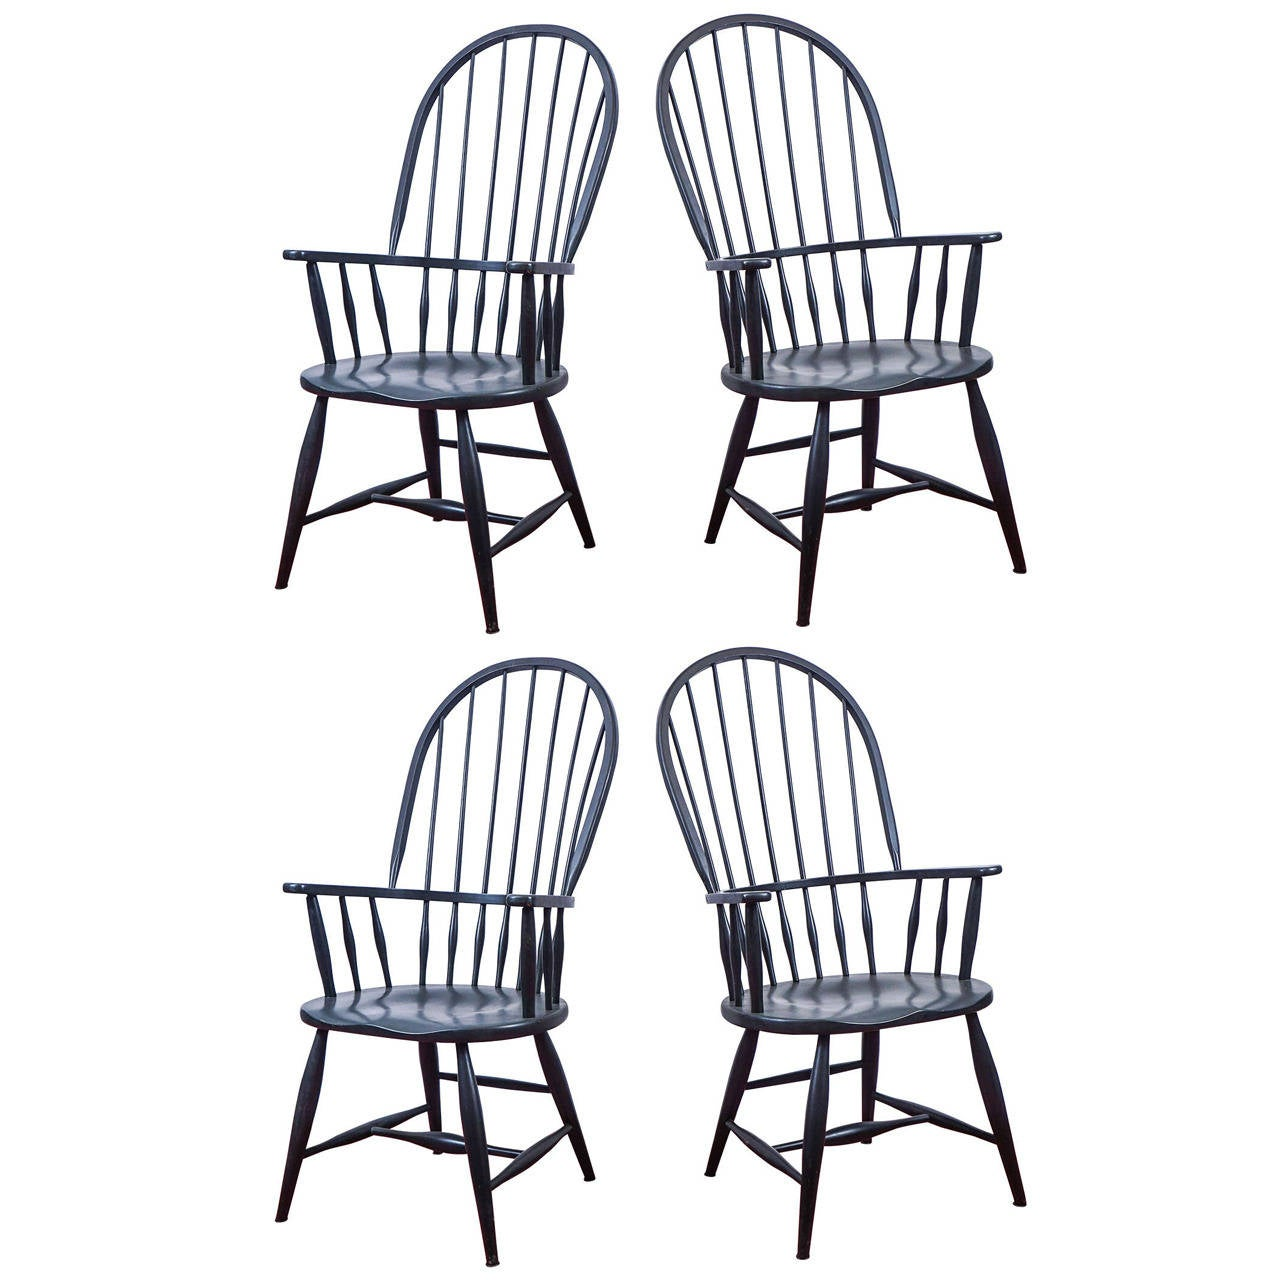 Set of four Windsor armchairs, early 20th century